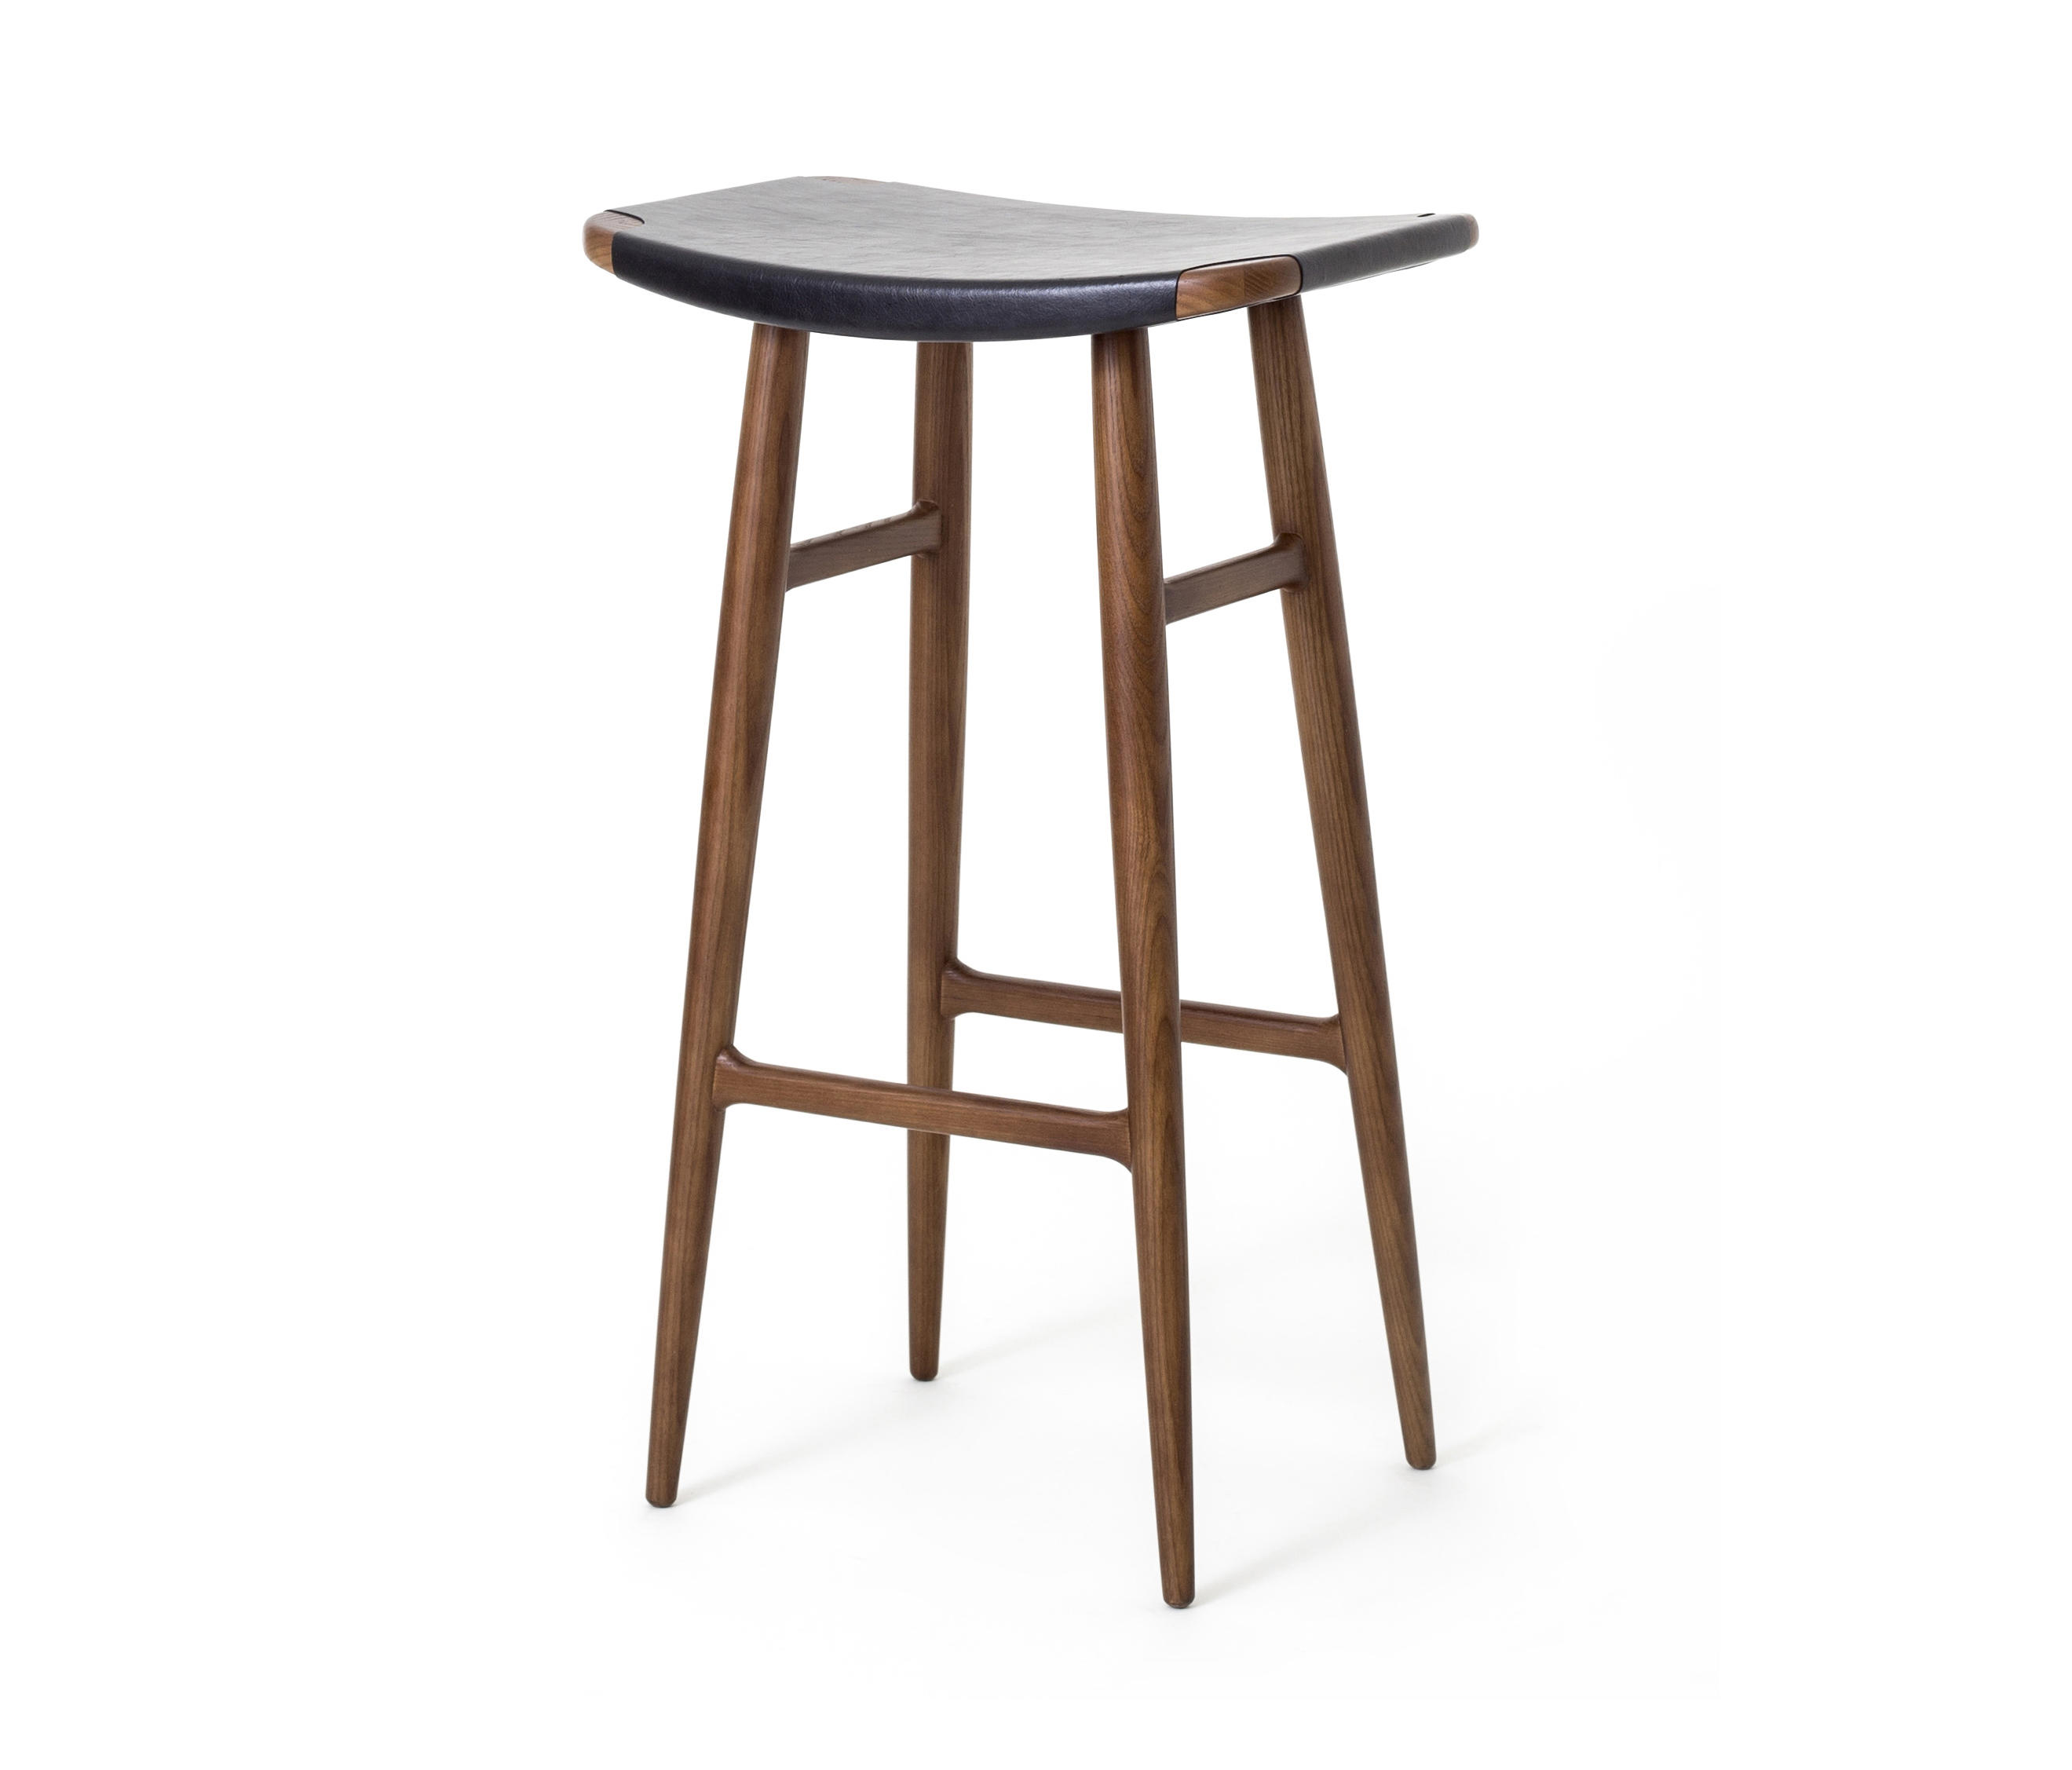 Freja Bar Stool Sh750 Leather Seat